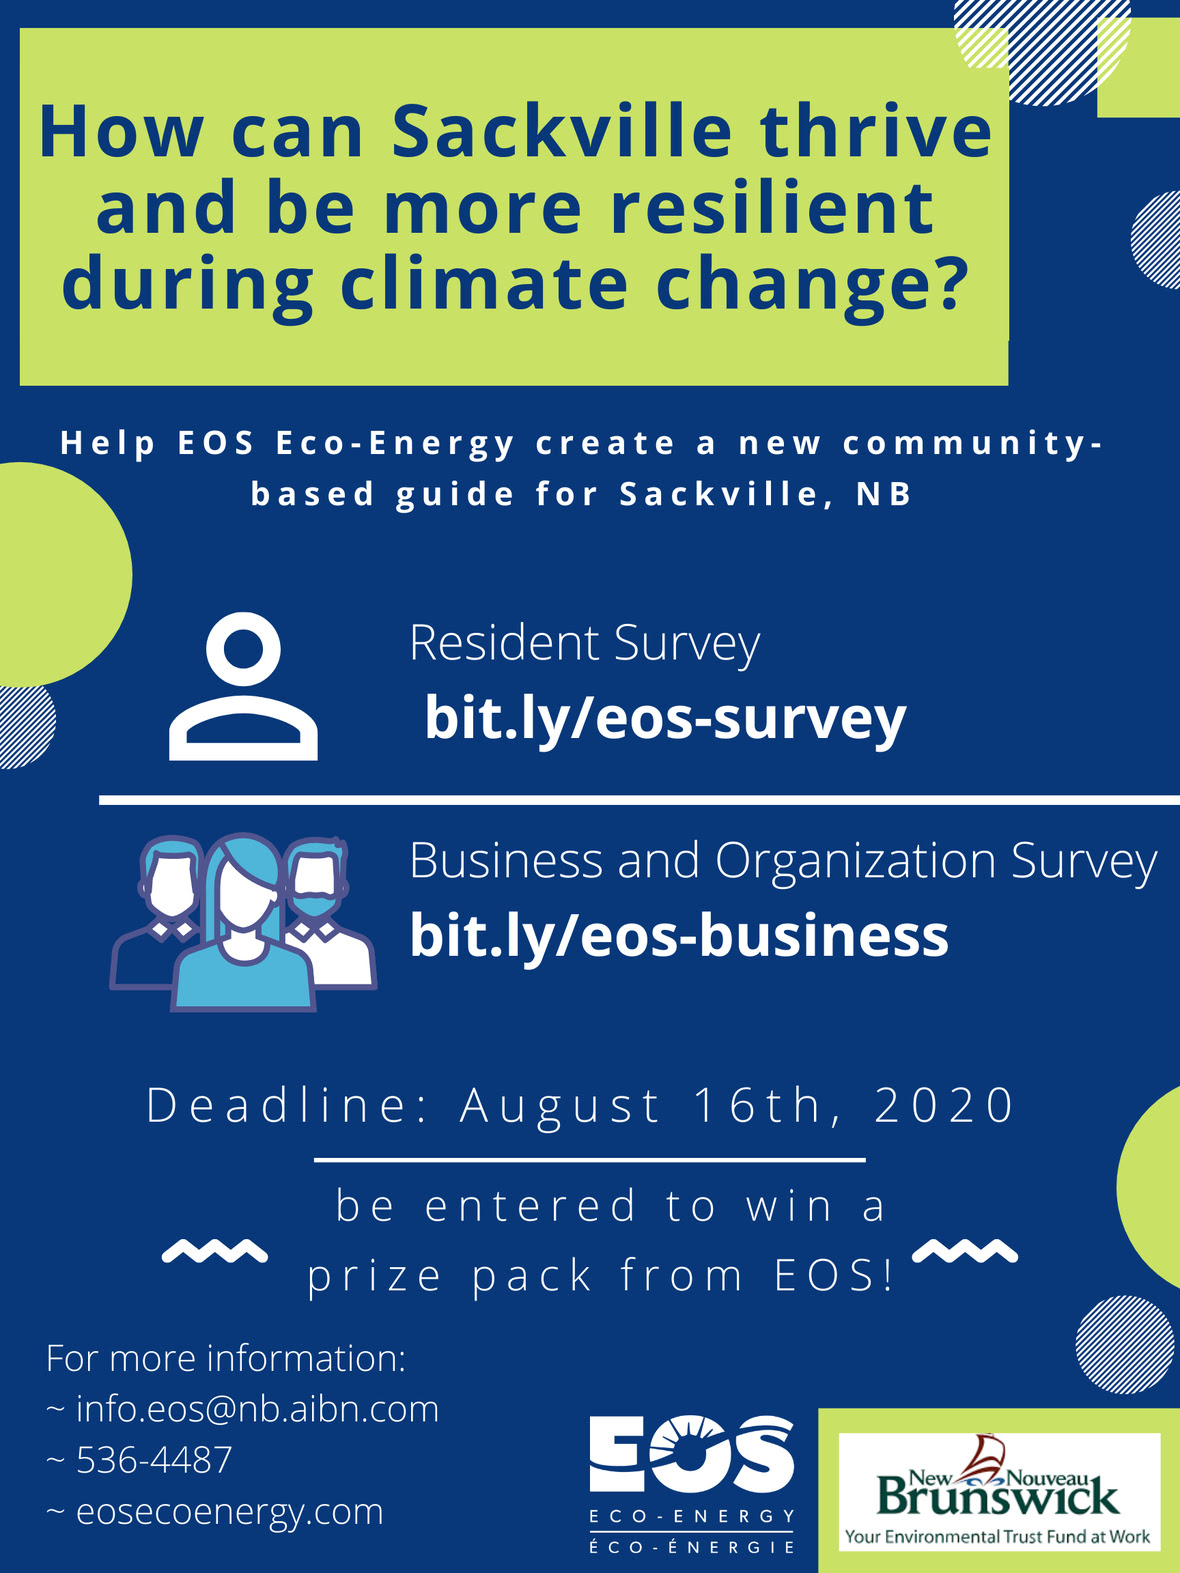 How can Sackville thrive and be more resilient during climate change? Help EOS Eco-Energy create a new community-based guide for Sackville, NB.